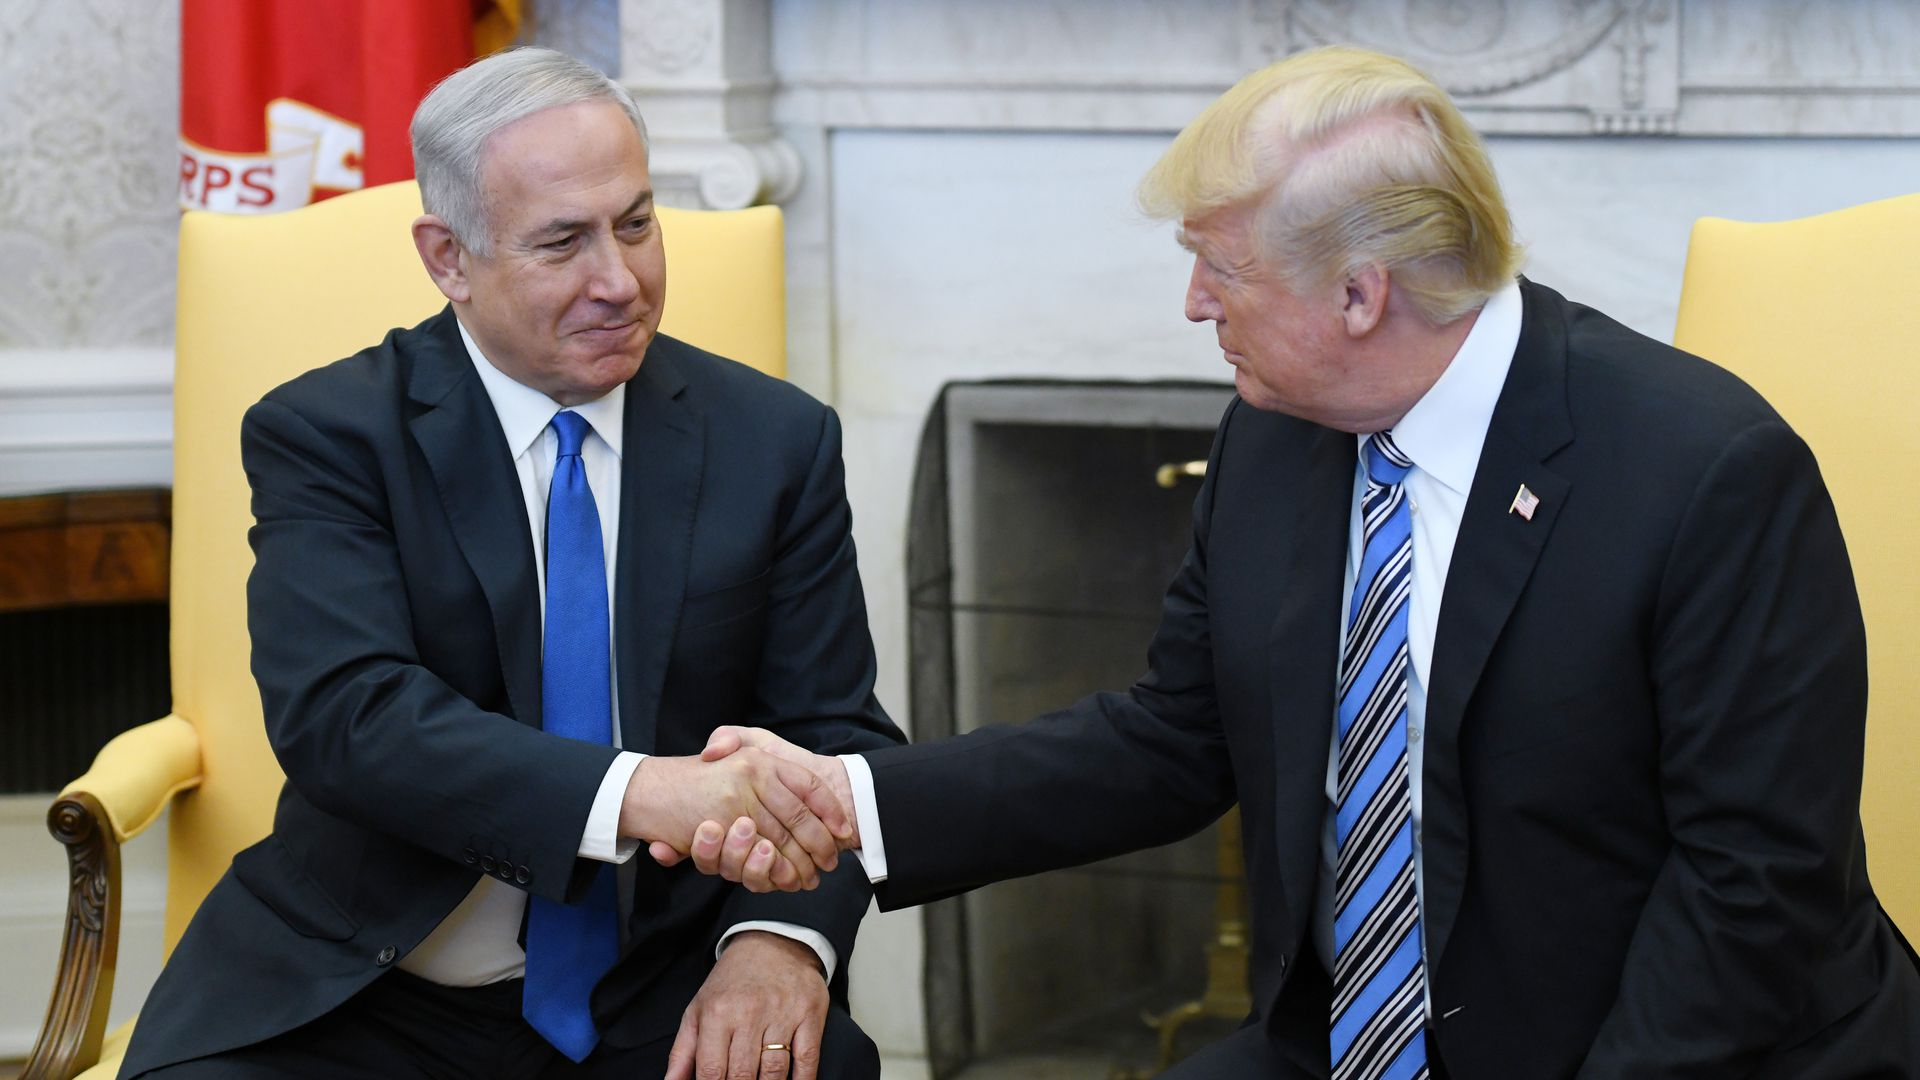 Trump and the Israeli prime minister shake hands in the Oval Office.